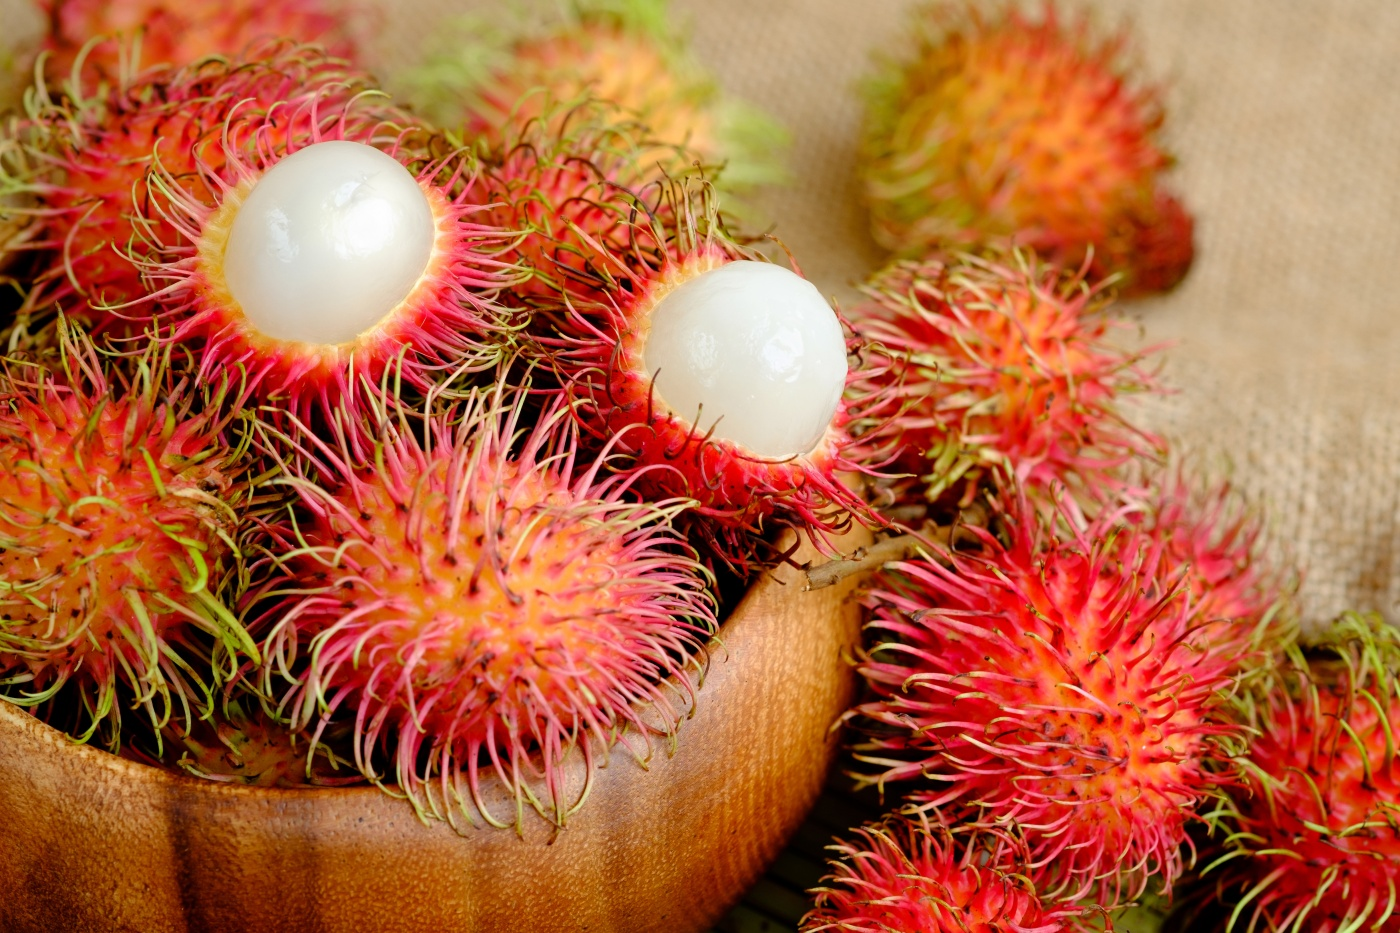 Rambutan: The Red Hairy Fruit – The Indigenous Bartender